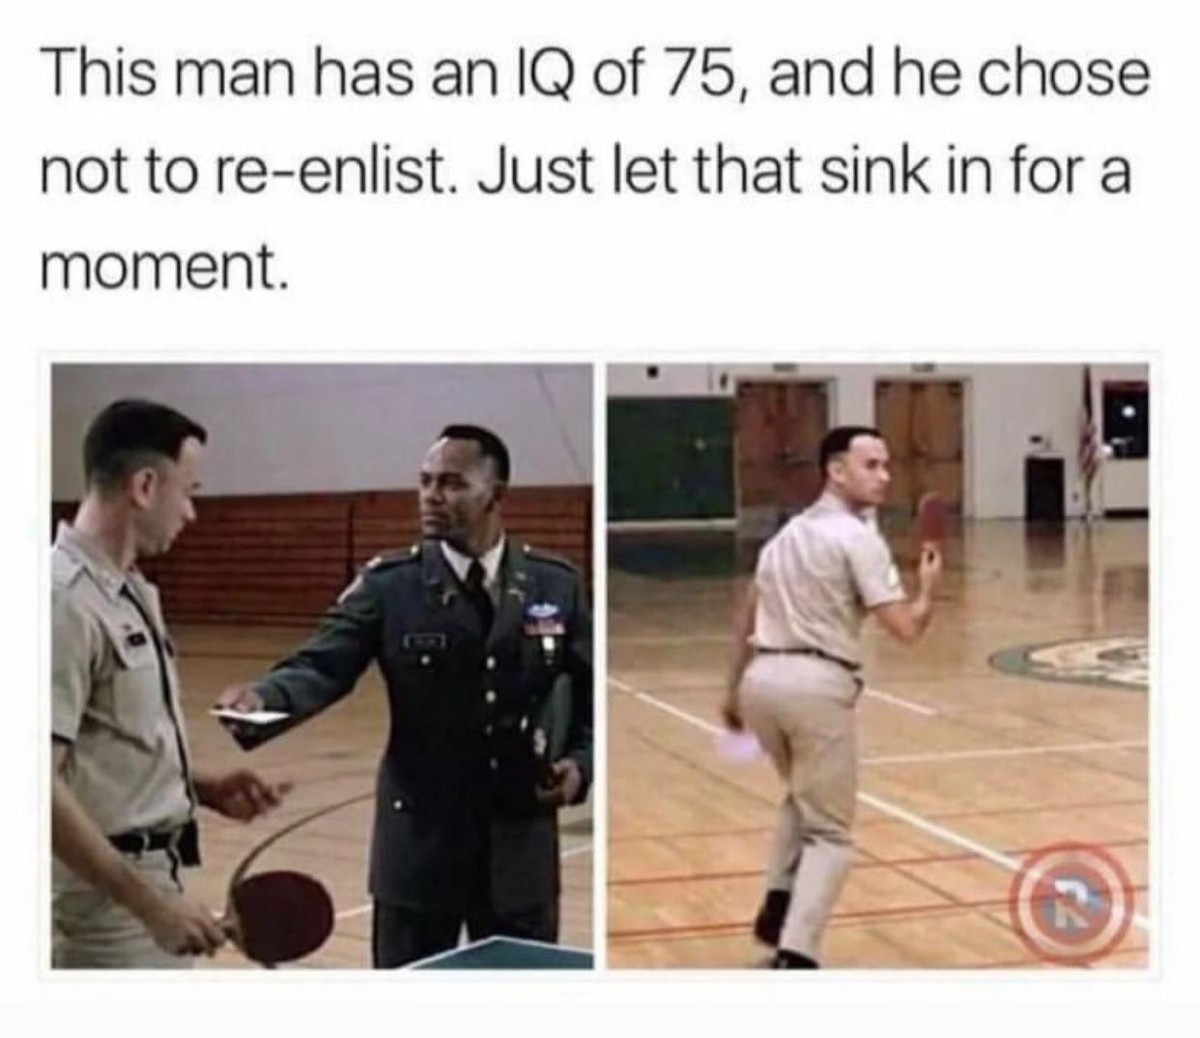 Run Forrest. .. Doesn't matter what your IQ is, everyone has the same IQ as their commander in the army. Which is usually about 4 on a good day